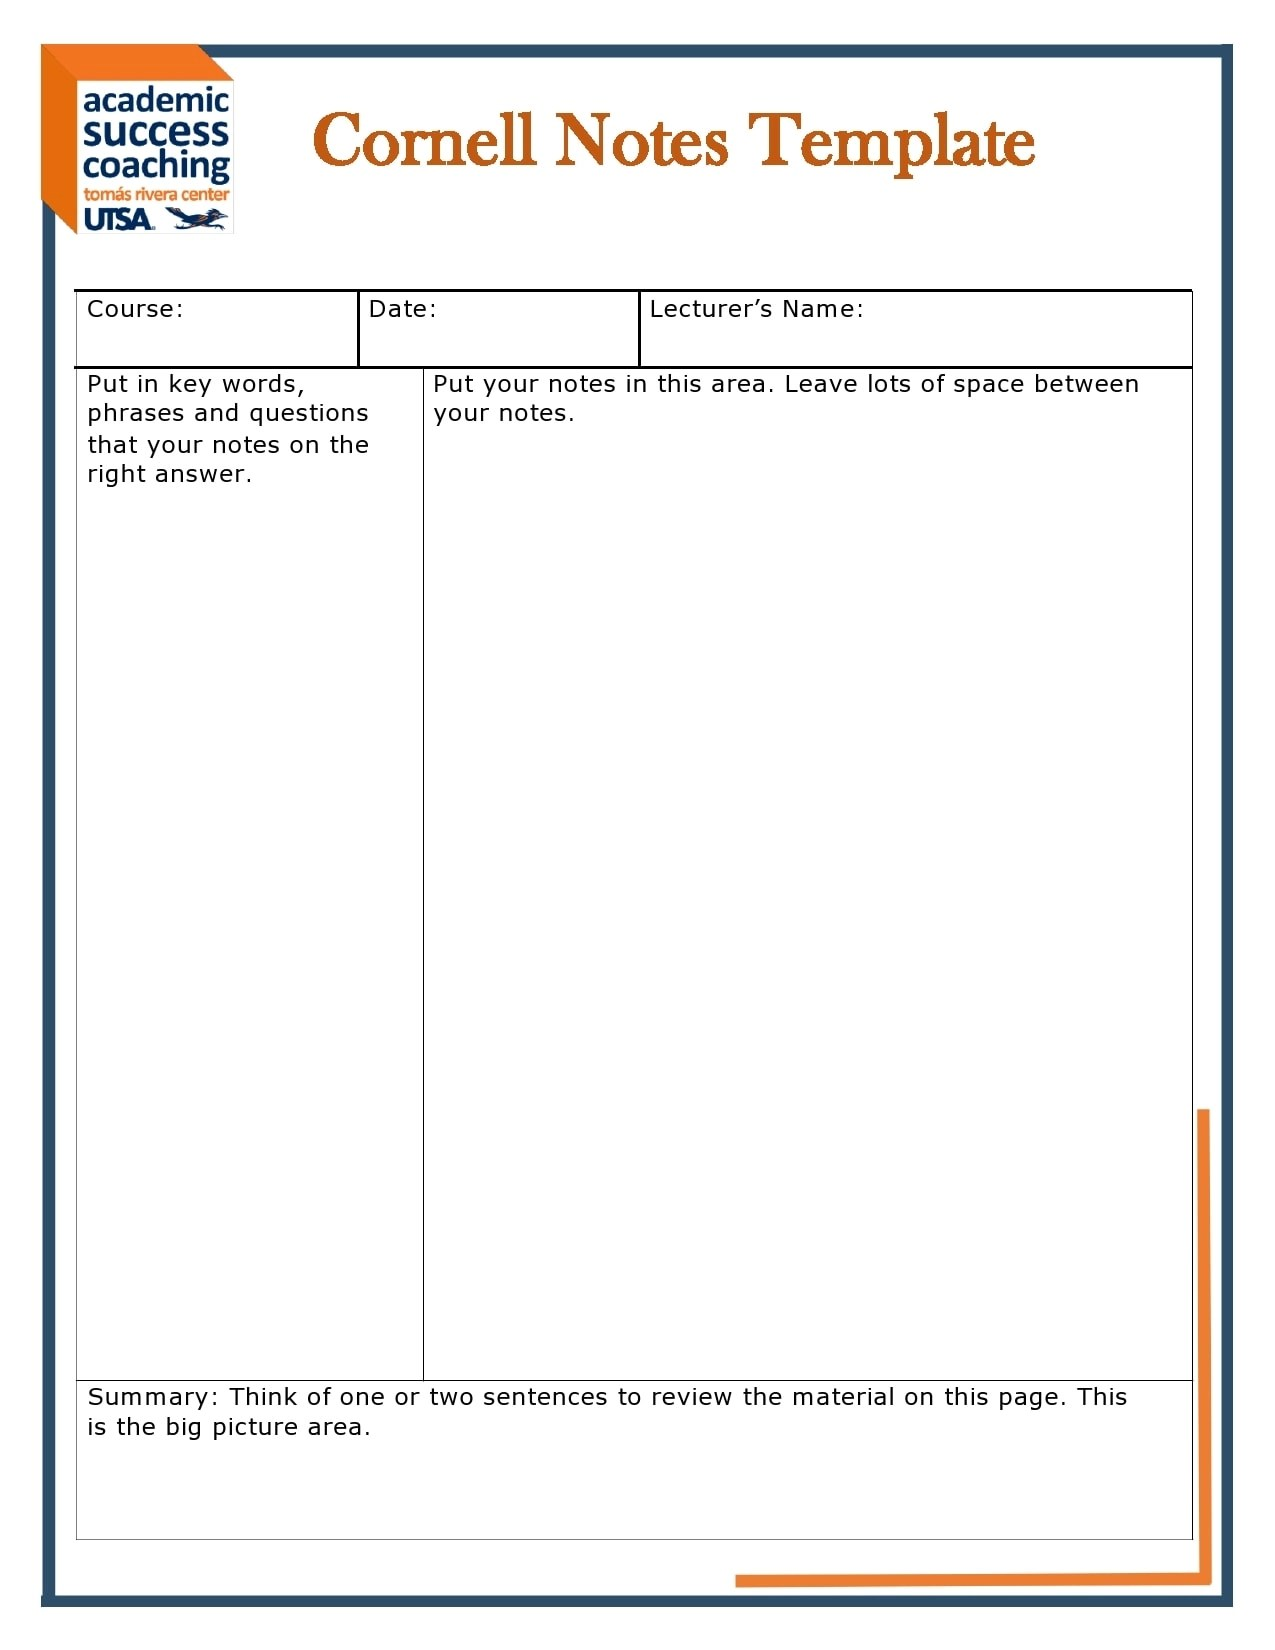 Take notes.use this accessible daily notes template to take notes and to make a digital notebook. 28 Printable Cornell Notes Templates Free Templatearchive